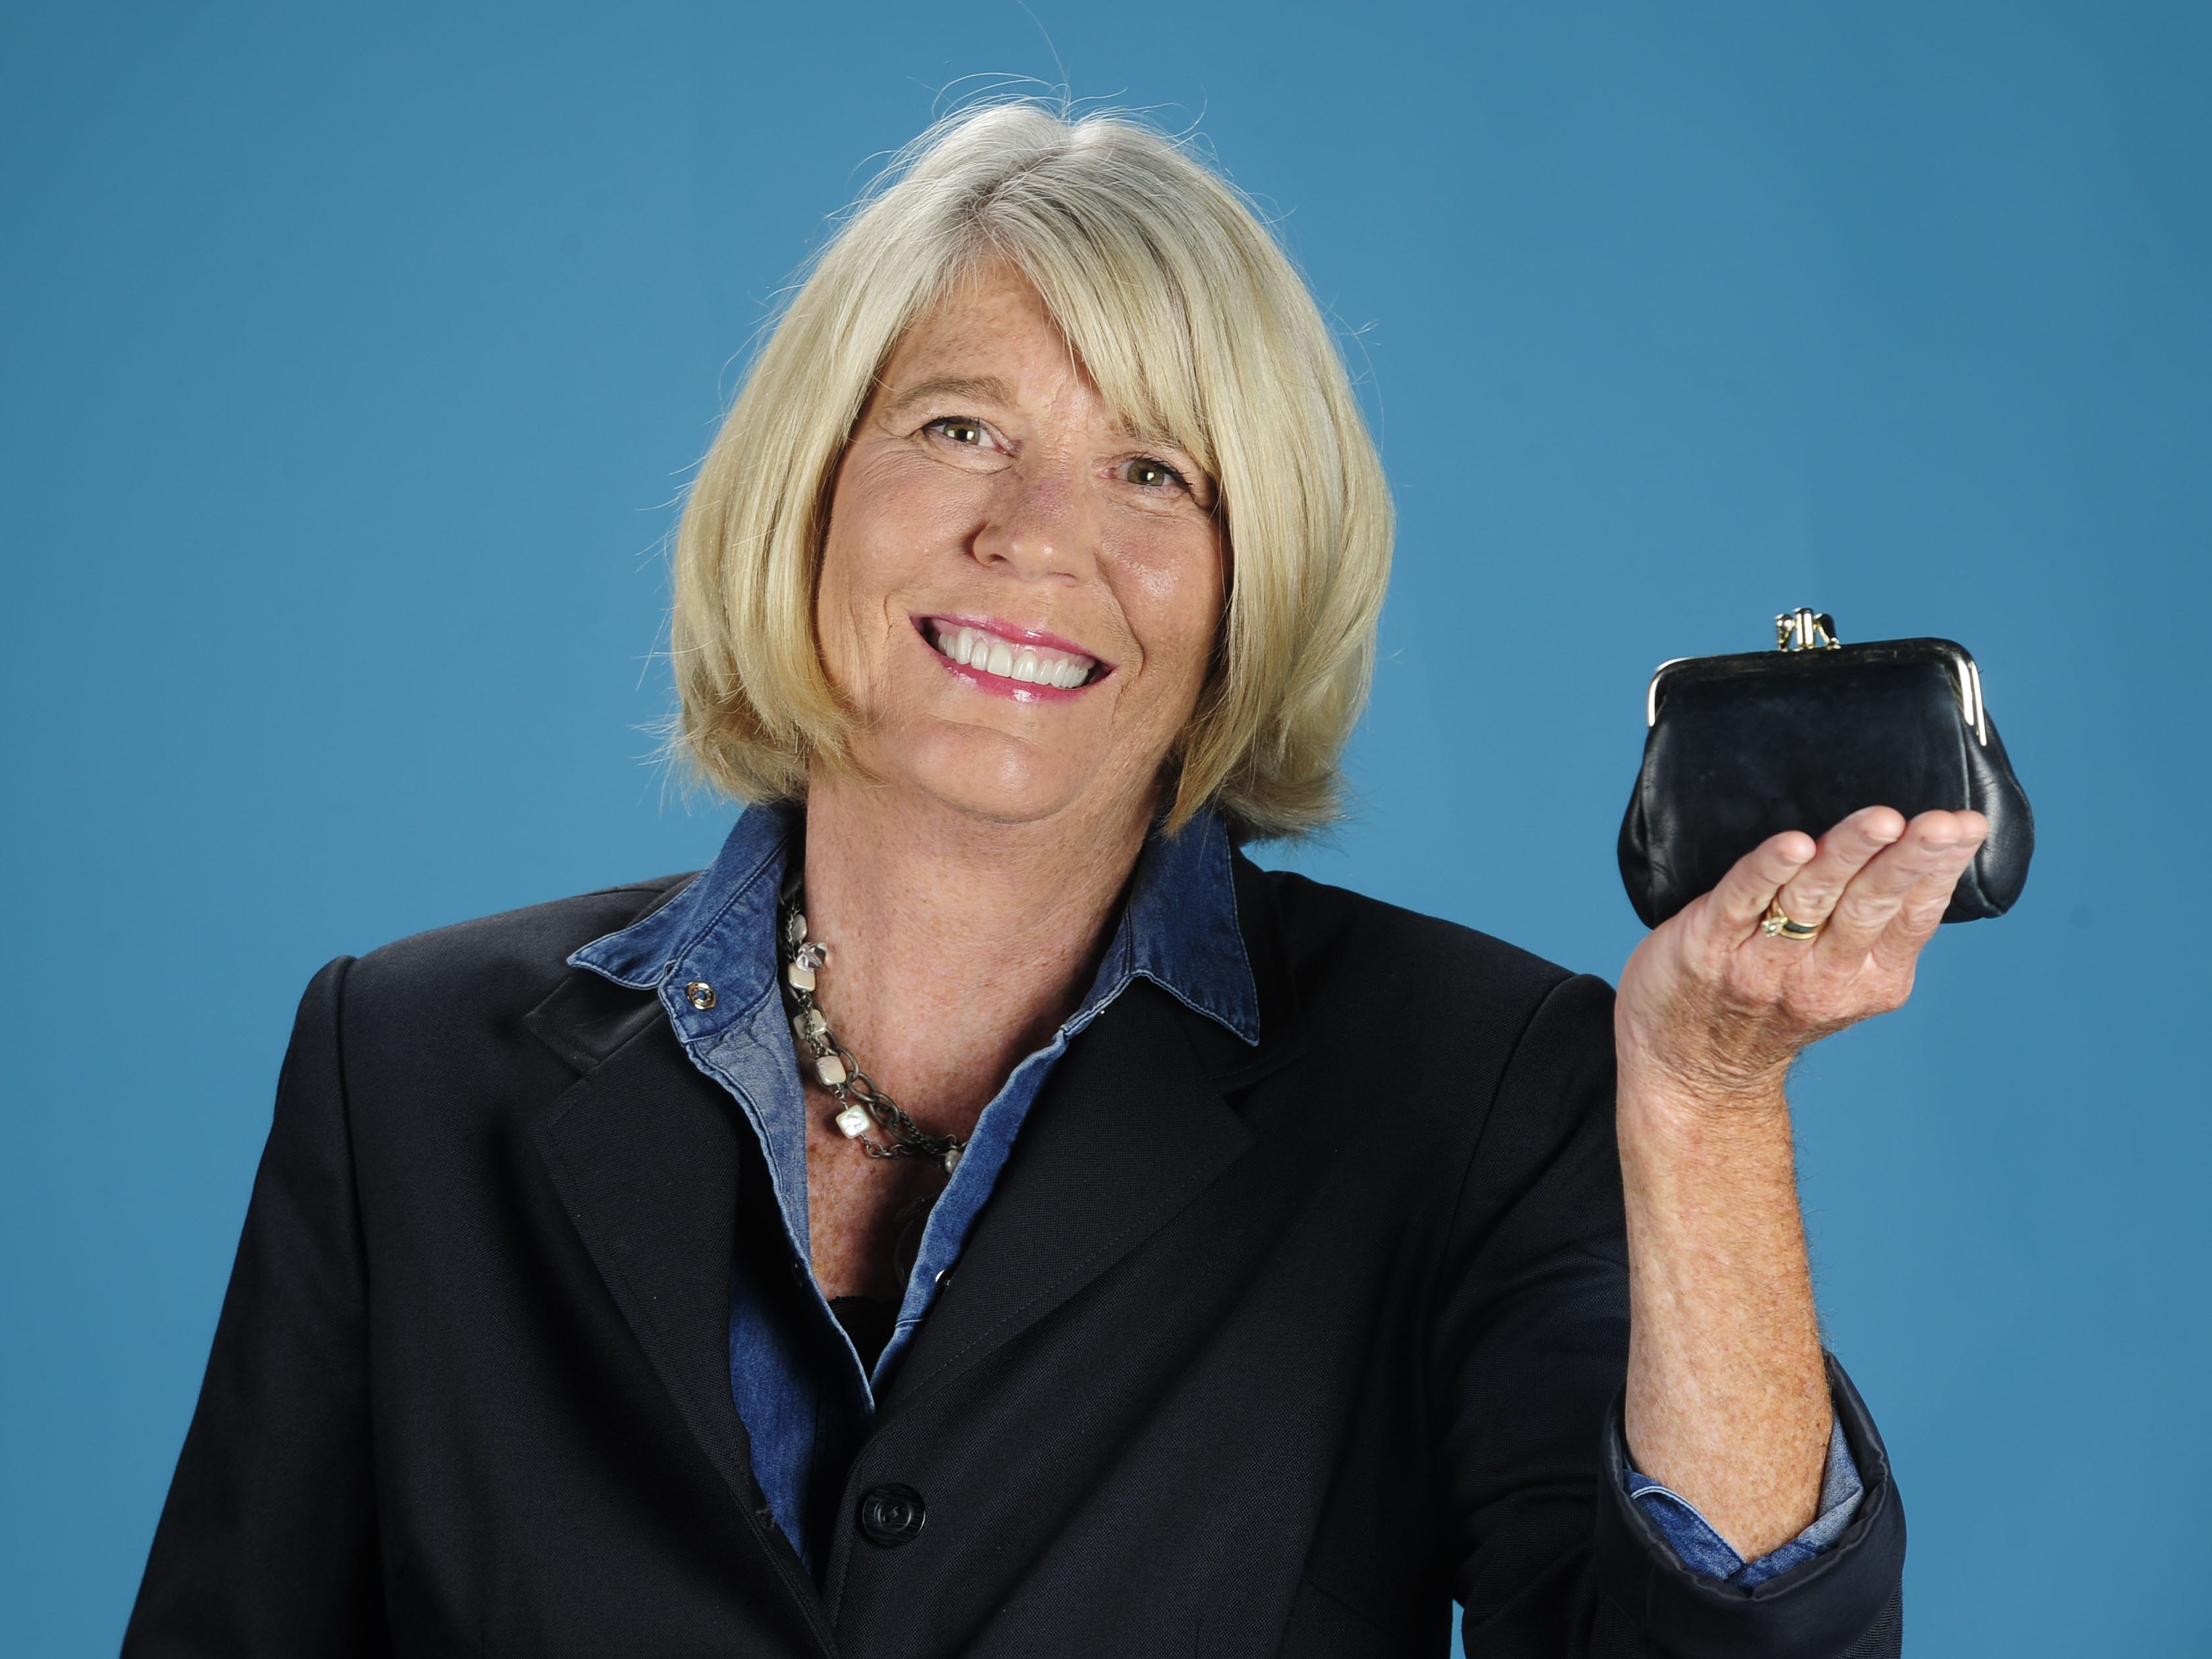 Mary Hance, aka Ms. Cheap, poses for a new column photo in the studio Oct. 12, 2013.